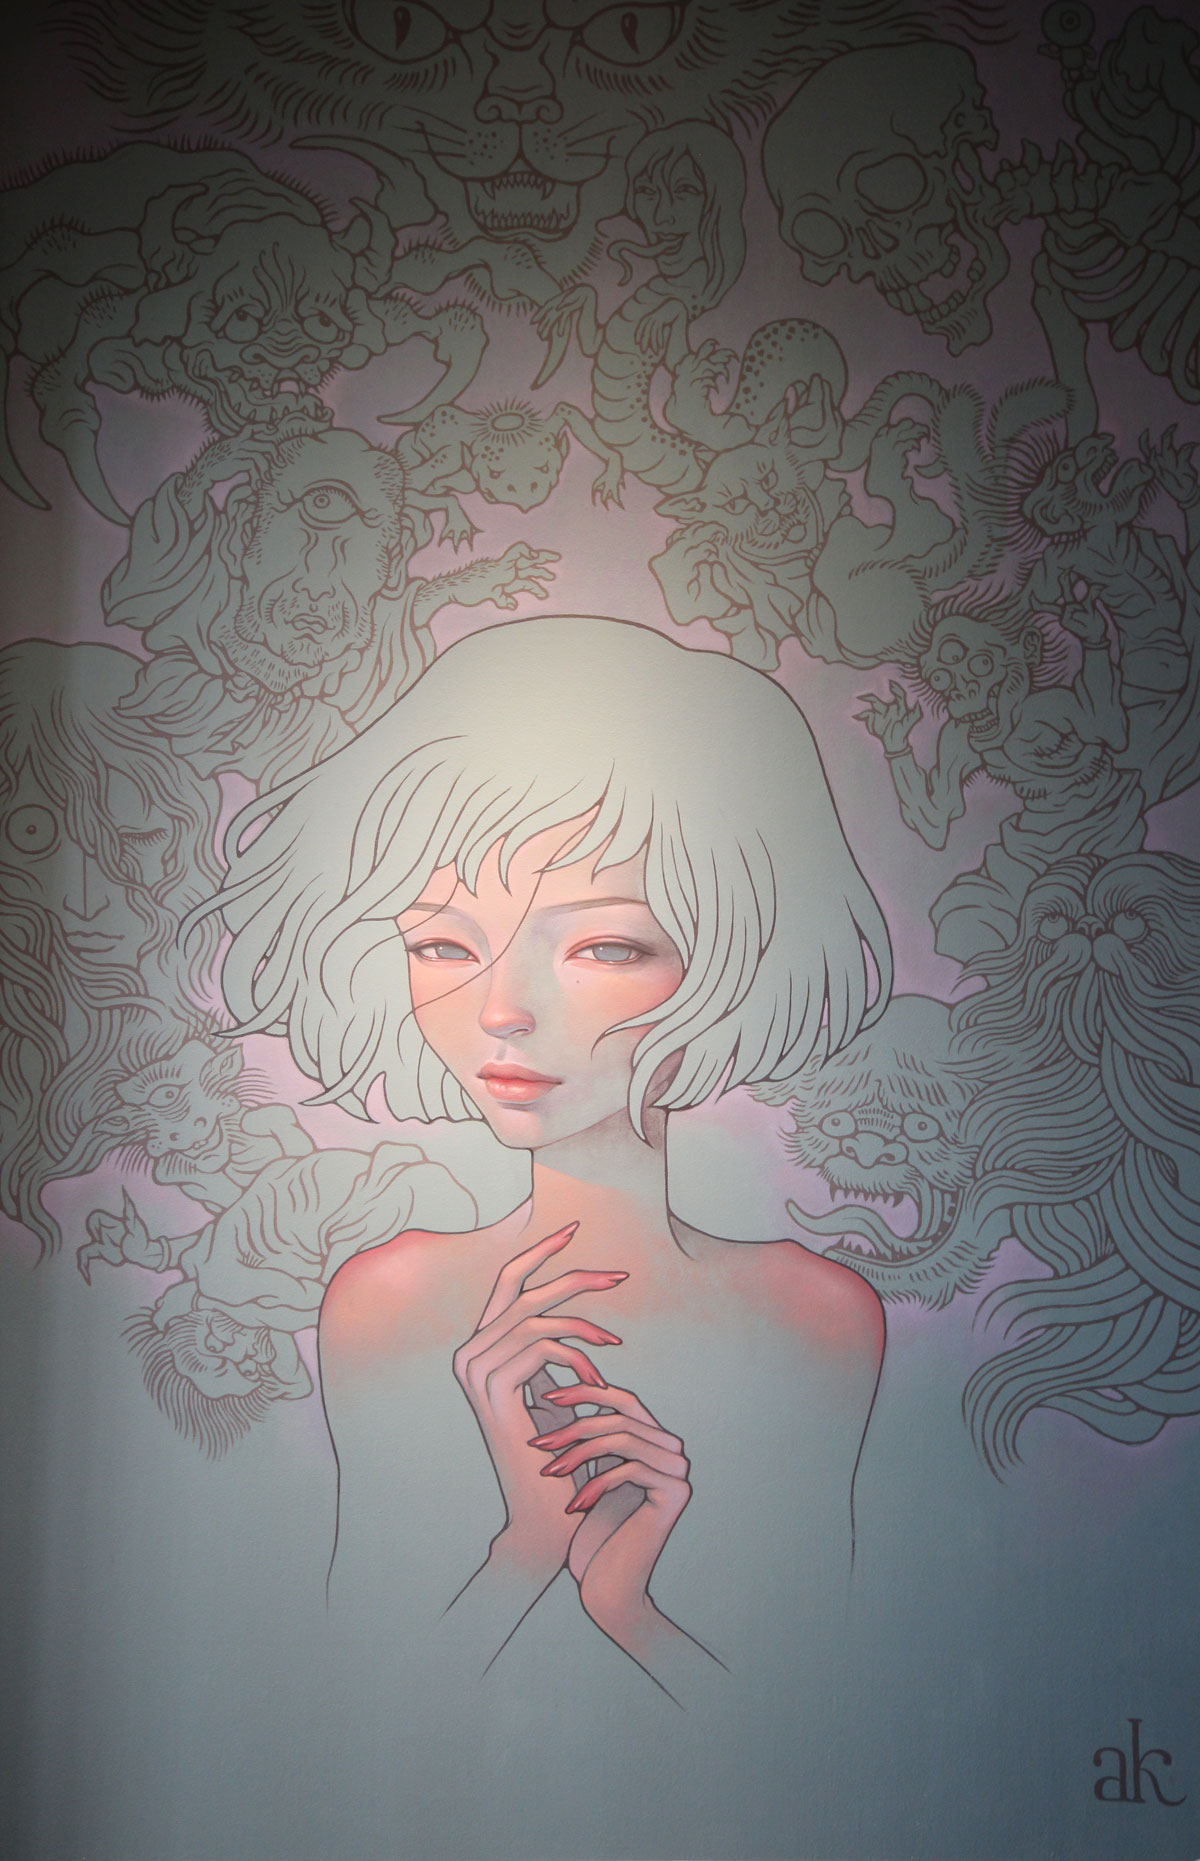 audrey kawasaki long beach museum of art vitality and verve (2)